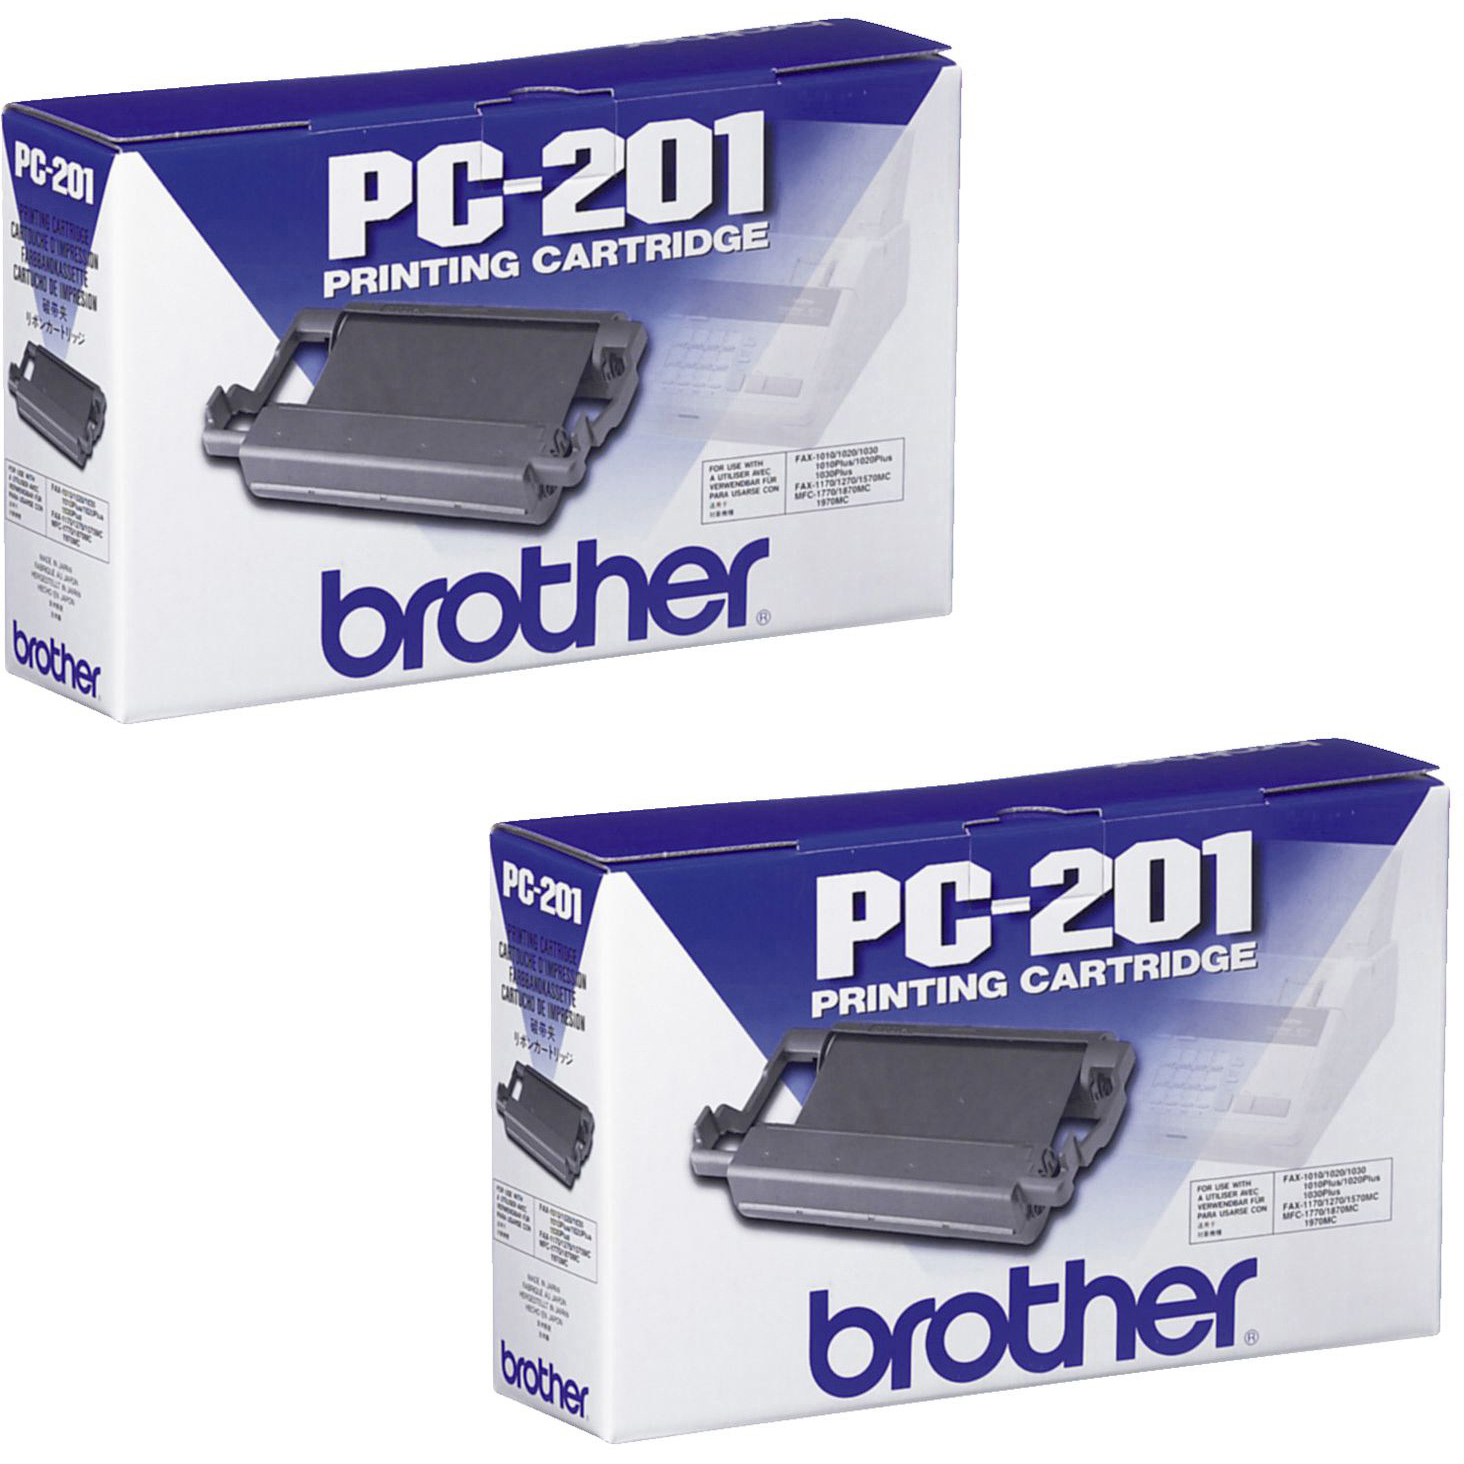 Original Brother PC-201 Black Twin Pack Ink Ribbon Cartridges (PC201)